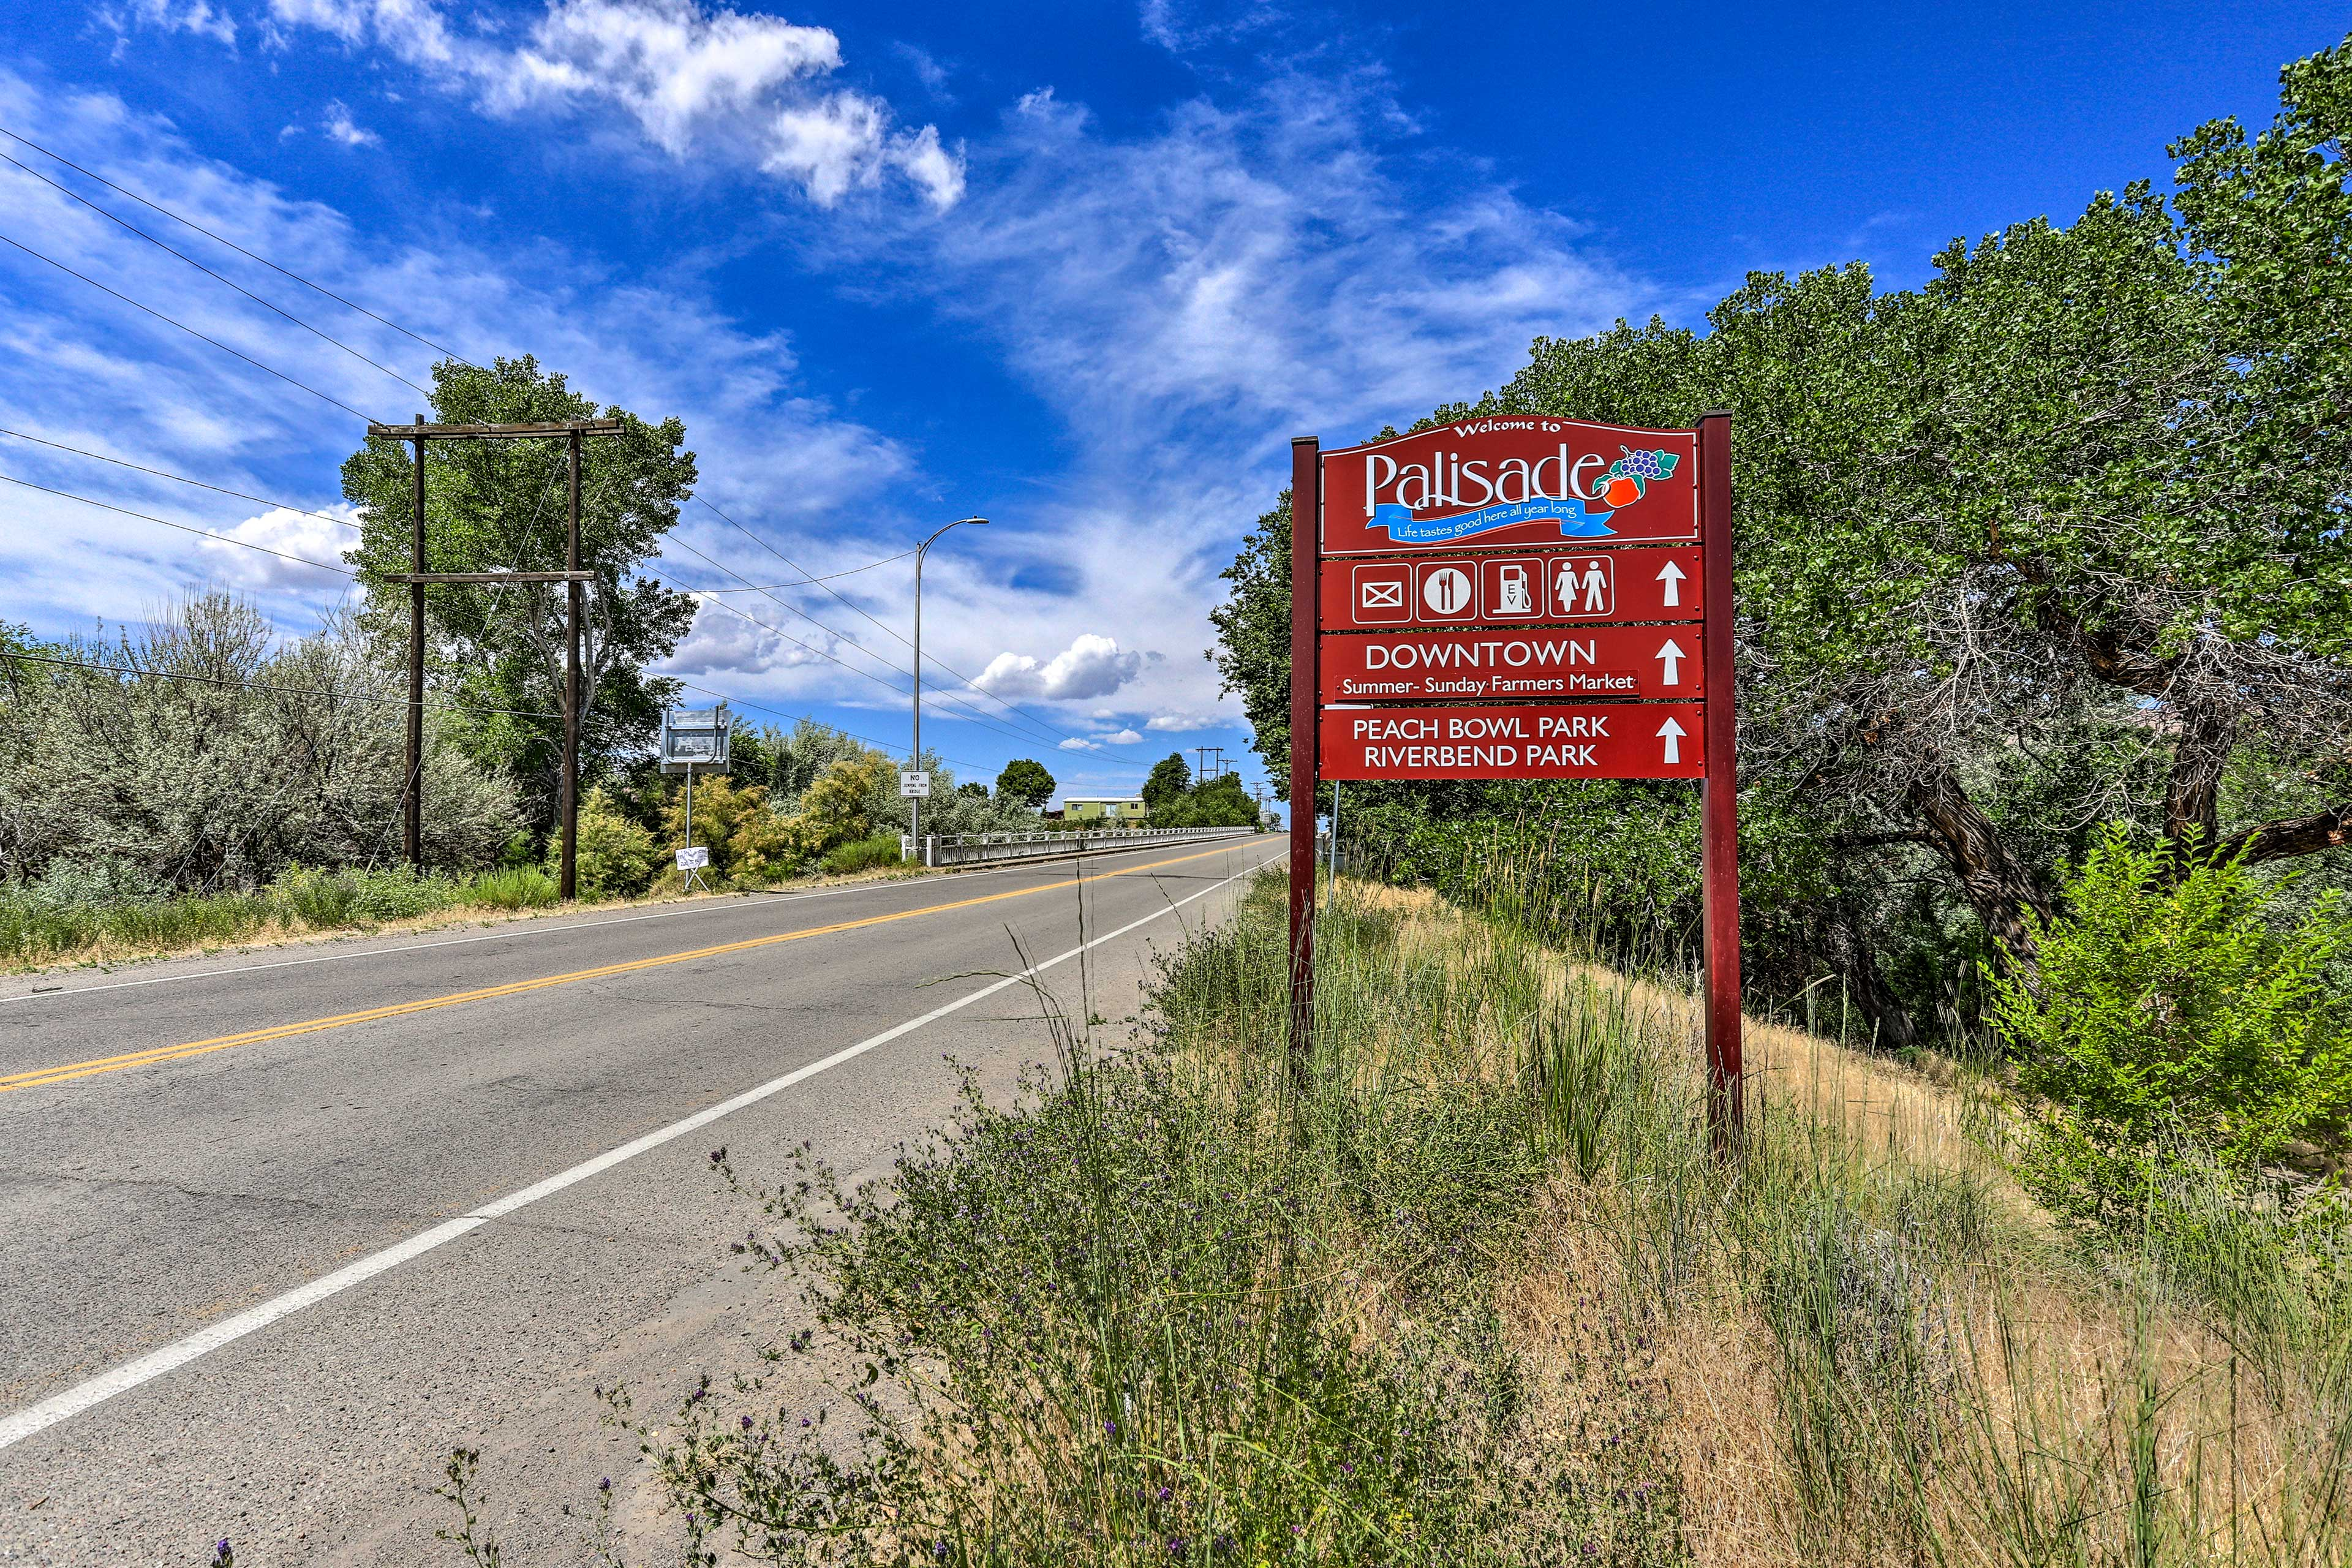 You'll be warmly welcomed to Palisade Colorado and all it's fun attractions!